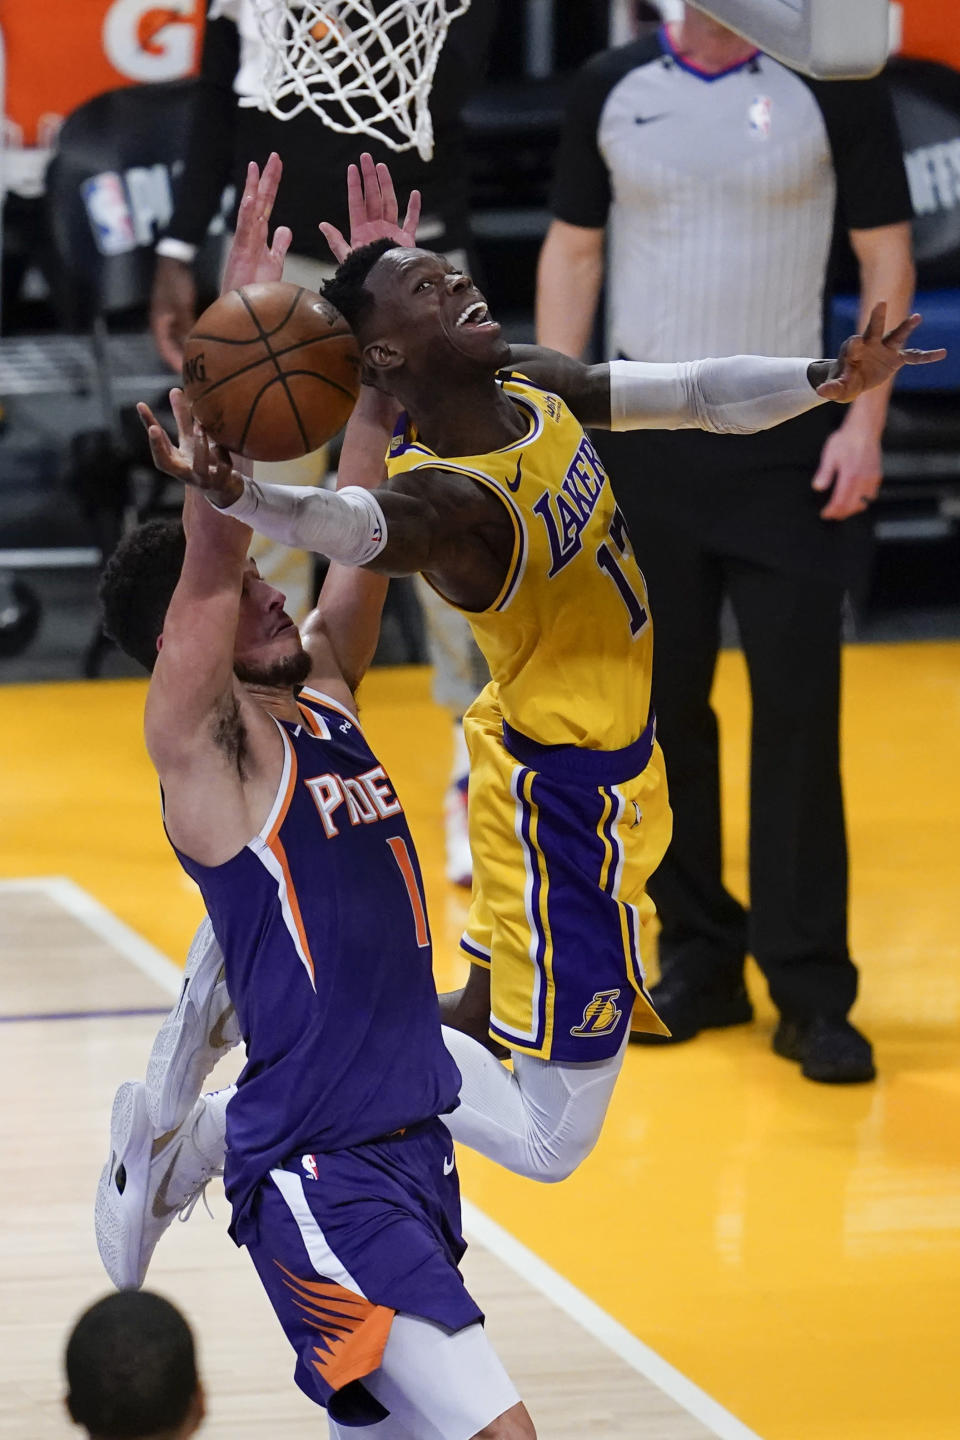 Los Angeles Lakers guard Dennis Schroder (17) shoots against Phoenix Suns guard Devin Booker (1) during the second quarter of Game 6 of an NBA basketball first-round playoff series Thursday, Jun 3, 2021, in Los Angeles. (AP Photo/Ashley Landis)